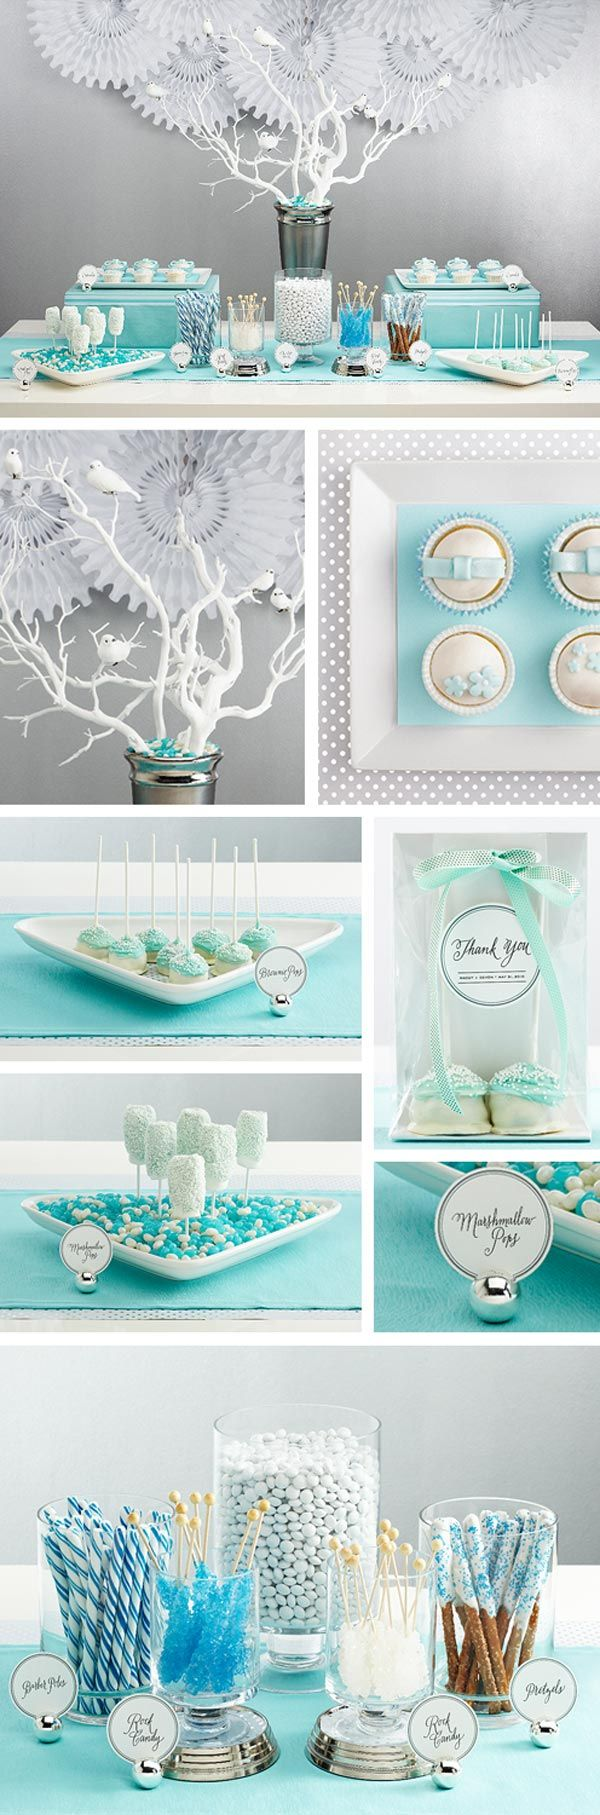 Baby show Decor Ideas in Blue.